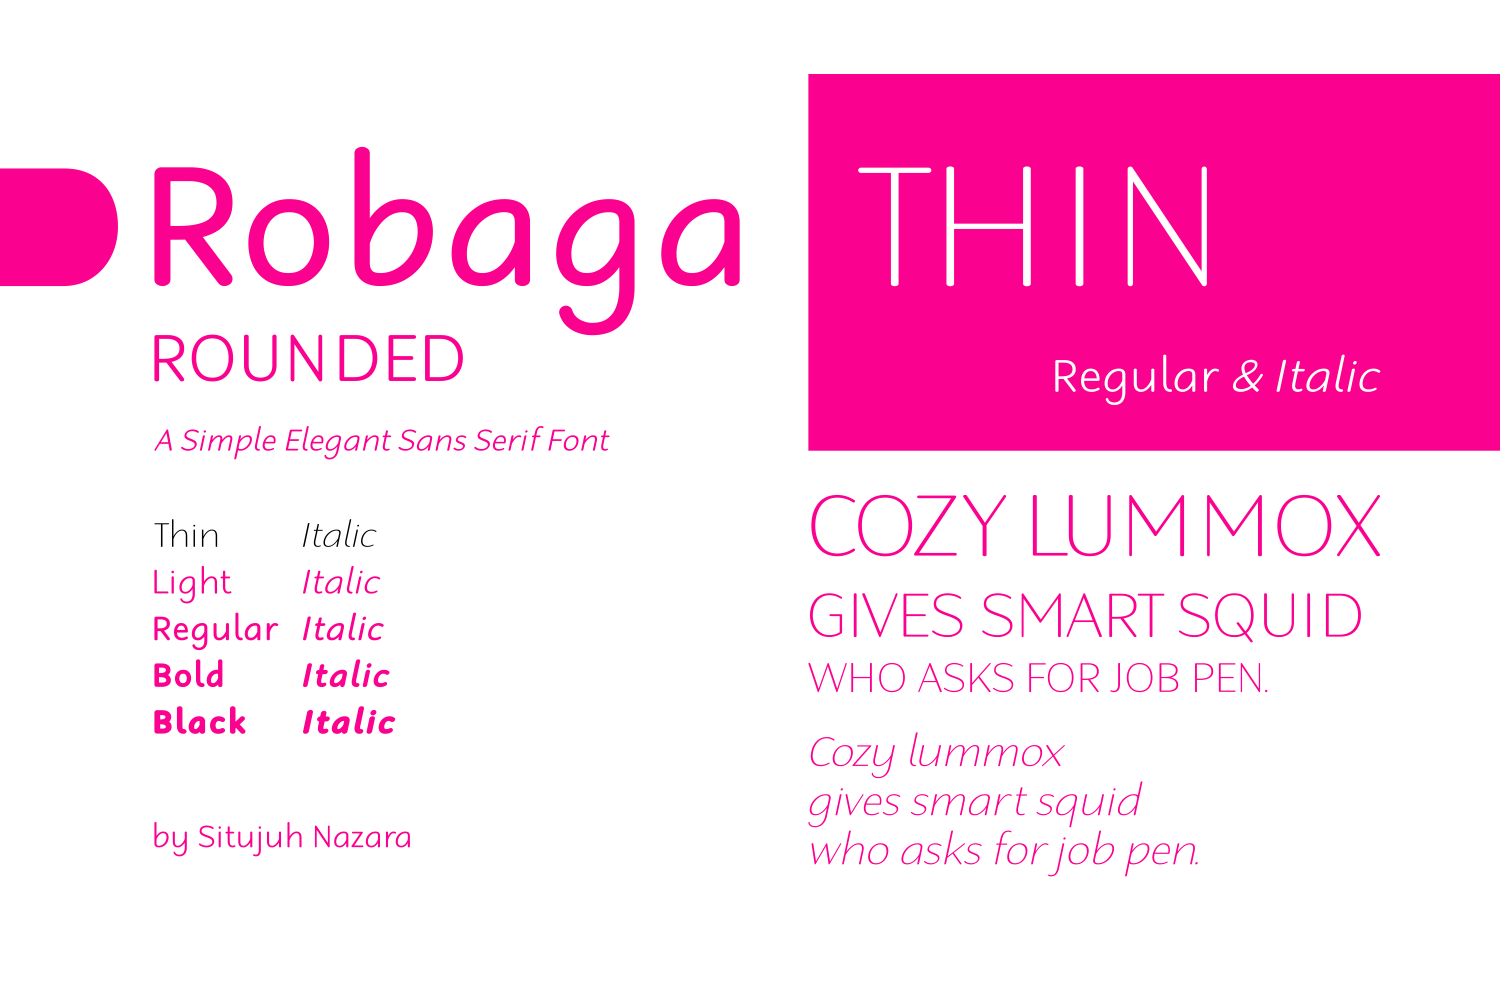 Robaga Rounded Thin Sans Serif Font By Situjuh